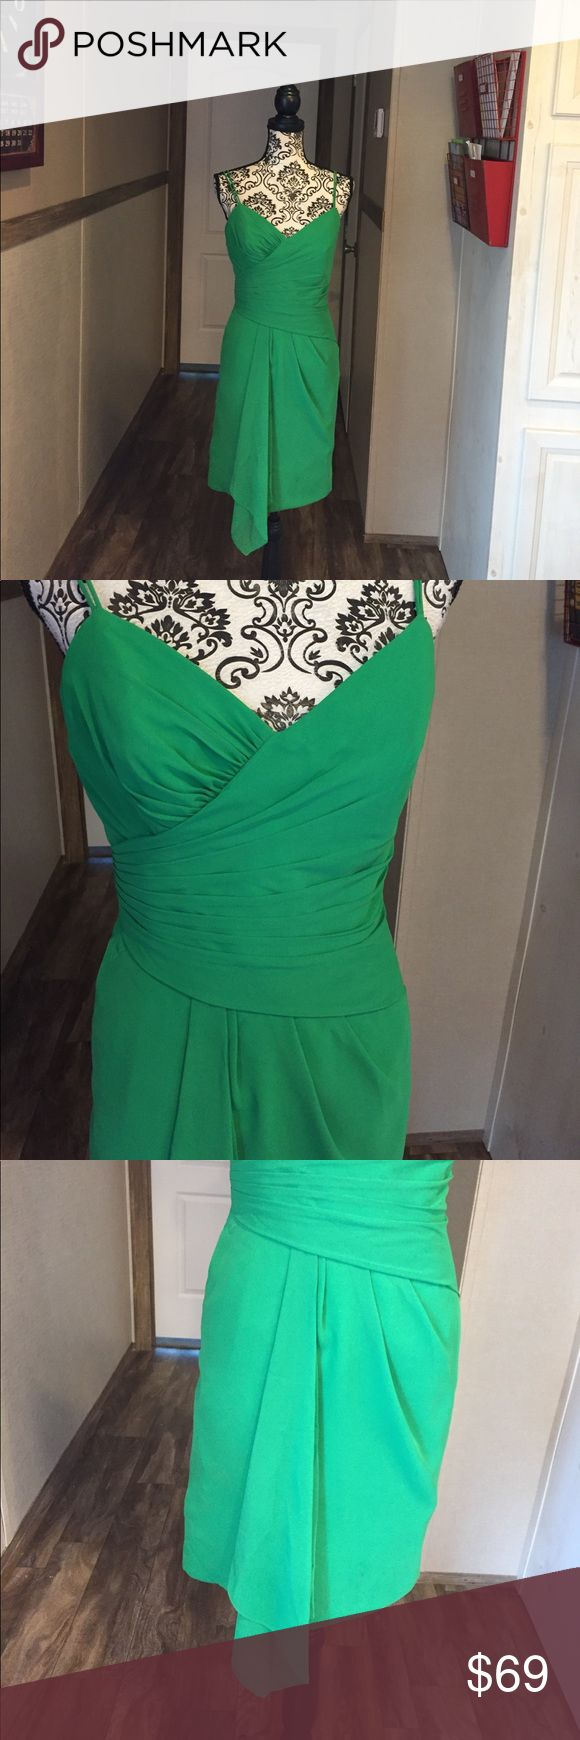 Alfred Angelo Kelly Green Cocktail Dress Alfred sung. No size can be found but fits my mannequin like a size 8-10. Ask for measurements. Lined. Chiffon like overlay. Double straps. Zipper in back. Kelly green. Never worn. Alfred Angelo Dresses Midi